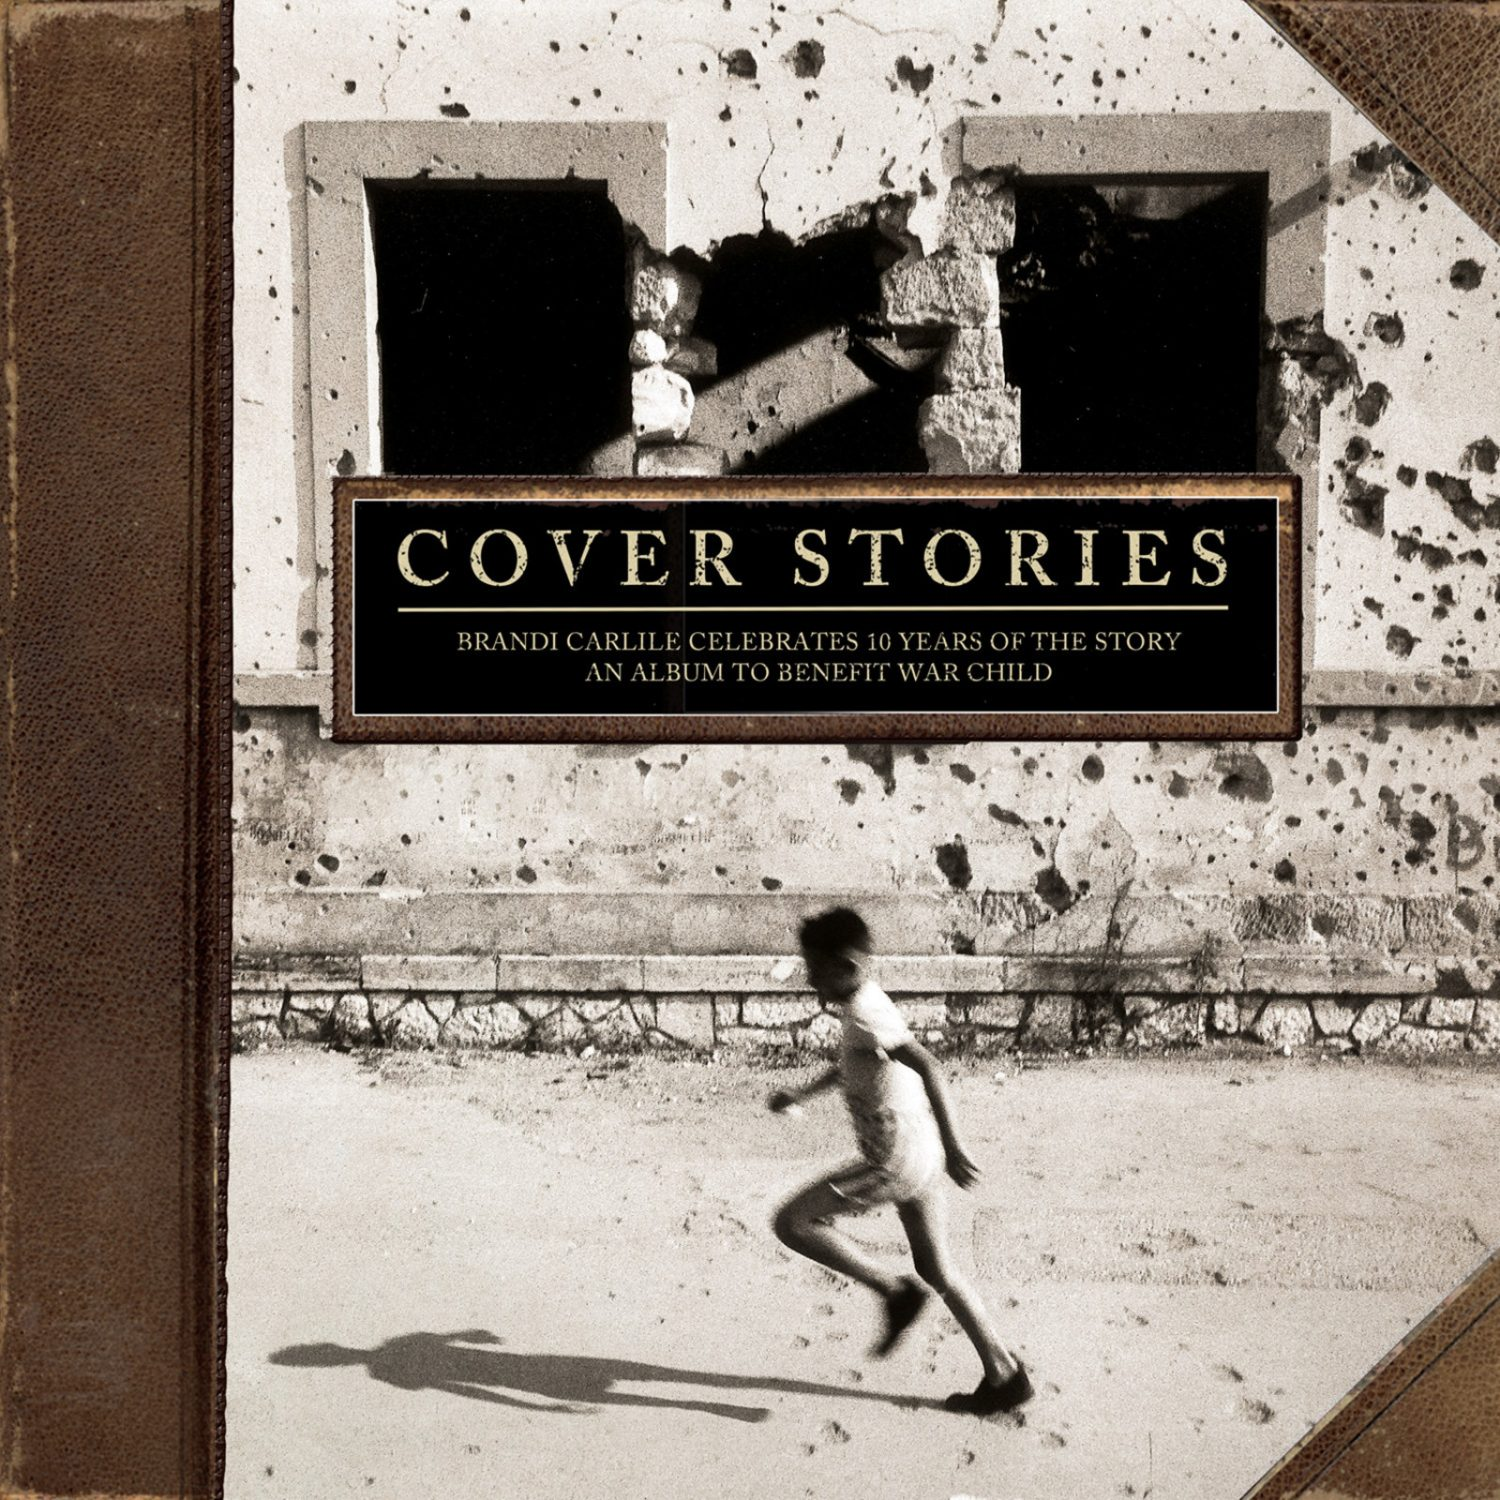 The Story Brandi Carlile: Review: 'Cover Stories: Brandi Carlile Celebrates 10 Years